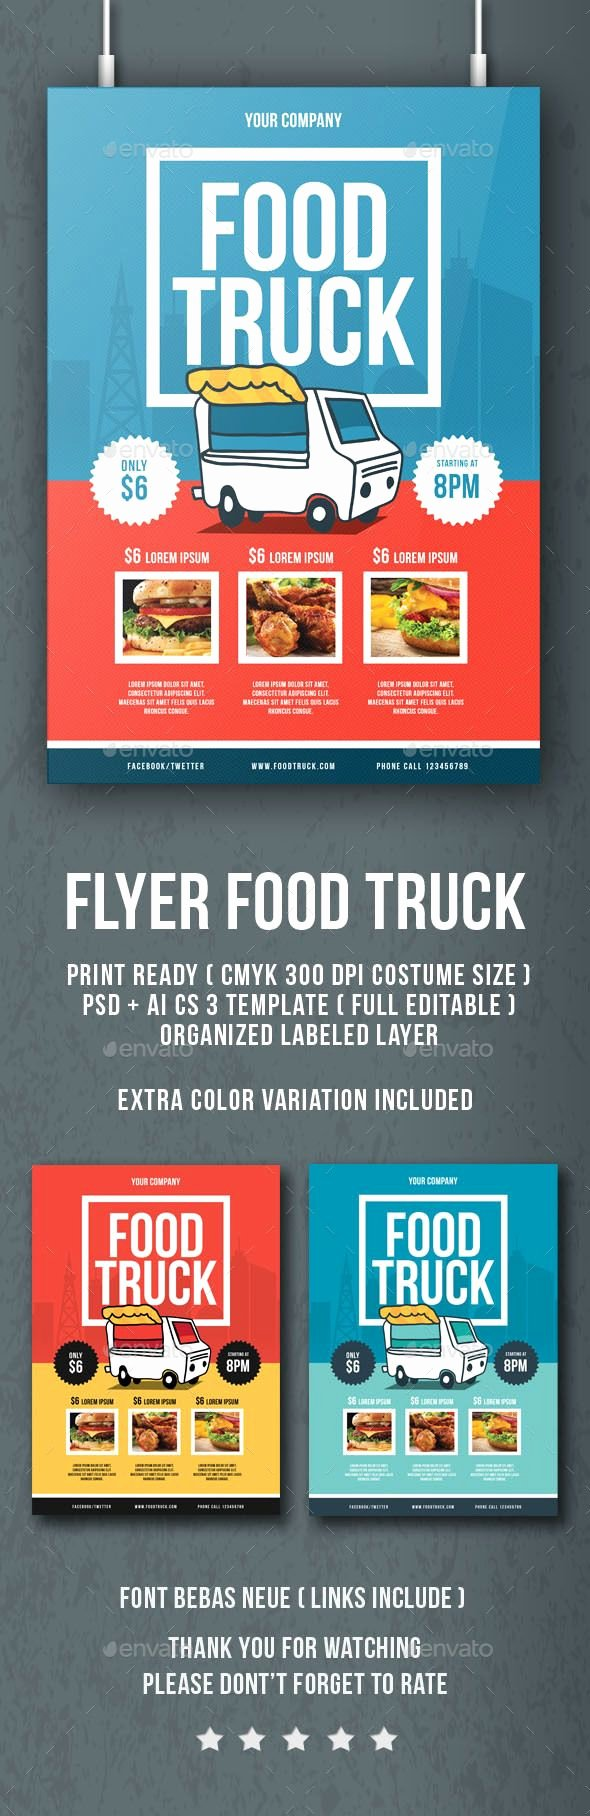 Food Truck Menu Template Unique Flyer Food Truck Flyers Print Templates